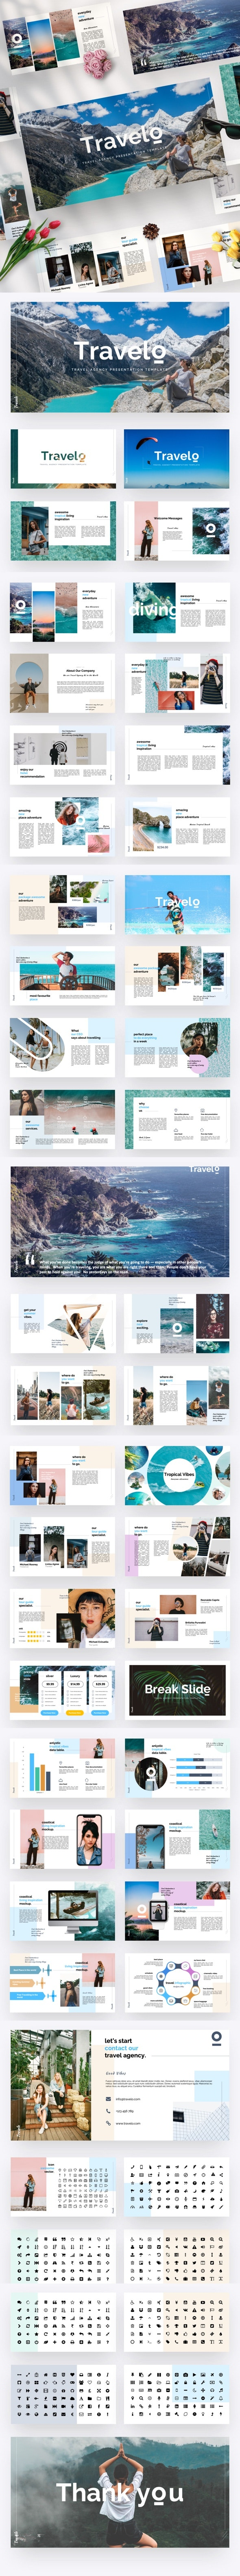 Travelo - Travel Agency Google Slide Template - Google Slides Presentation Templates